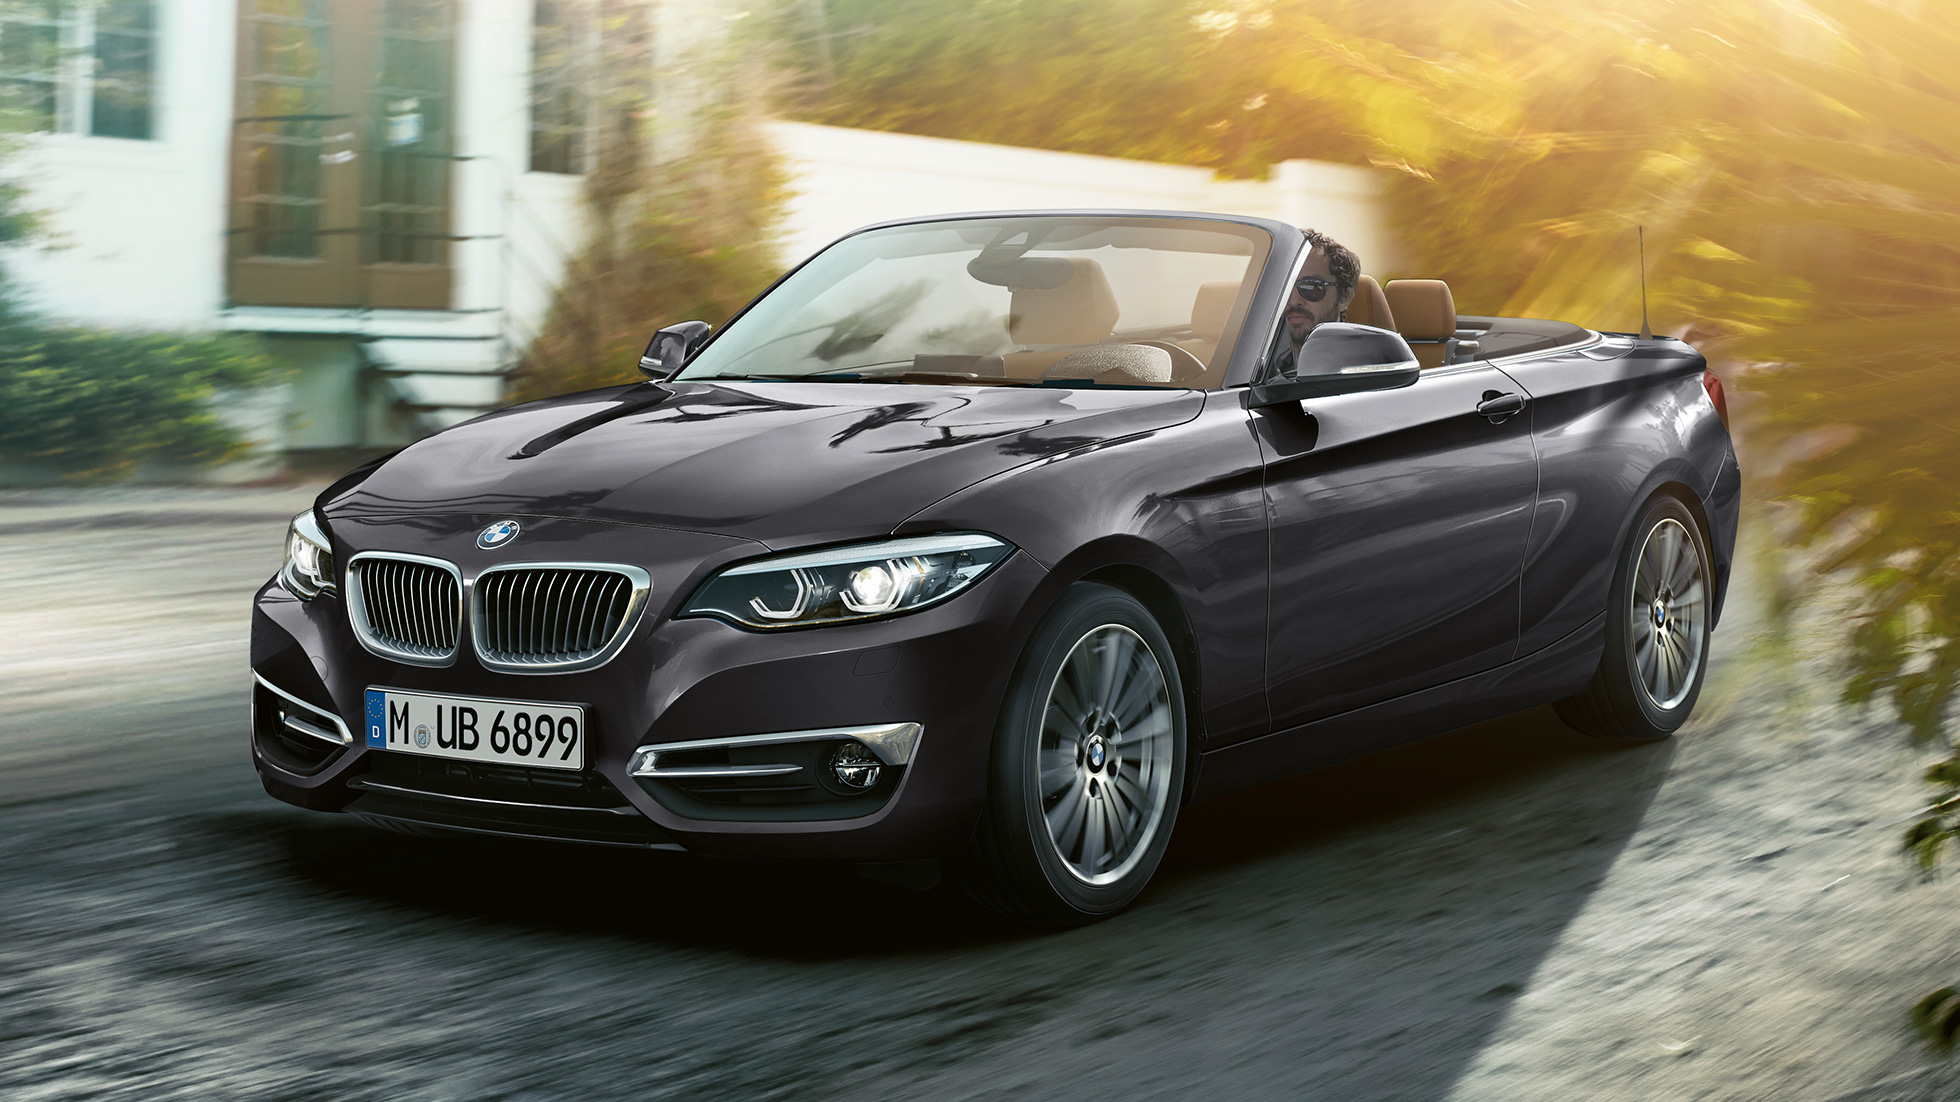 BMW 2 Series Convertible, front design